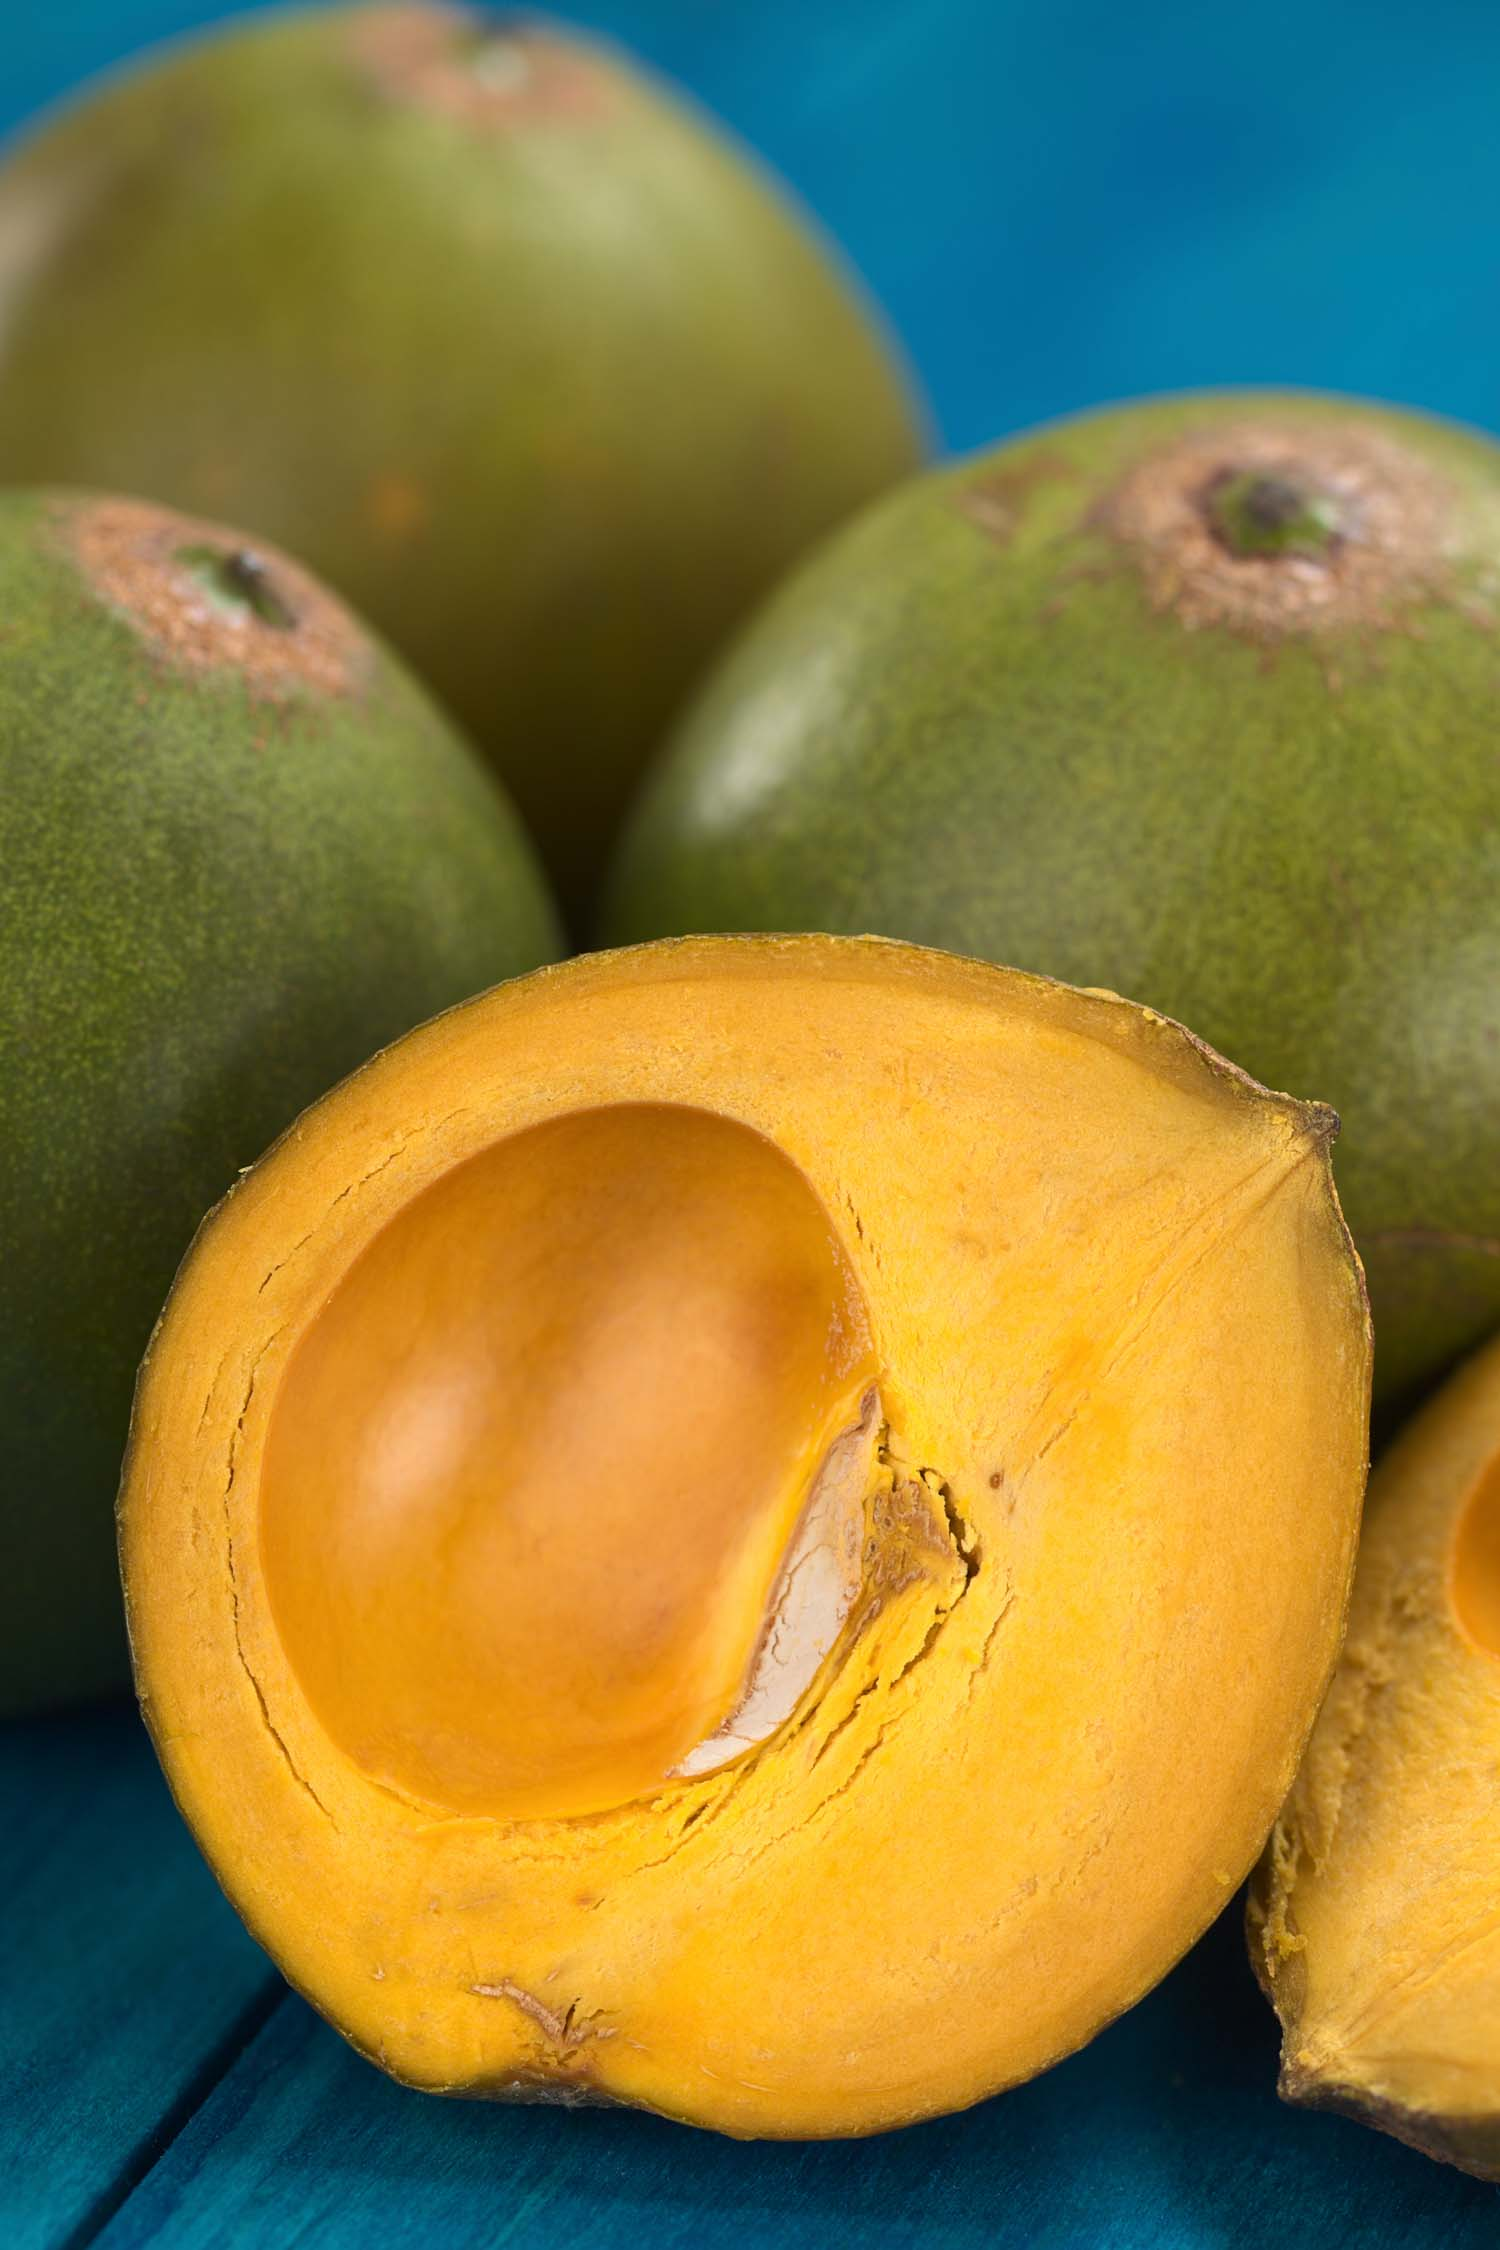 Peru fruit called Lucuma (lat. Pouteria lucuma) which has a dry sweet flesh and is mostly used to prepare juices milkshakes yogurts ice cream and other desserts (Selective Focus Focus on the front of the standing lucuma half)